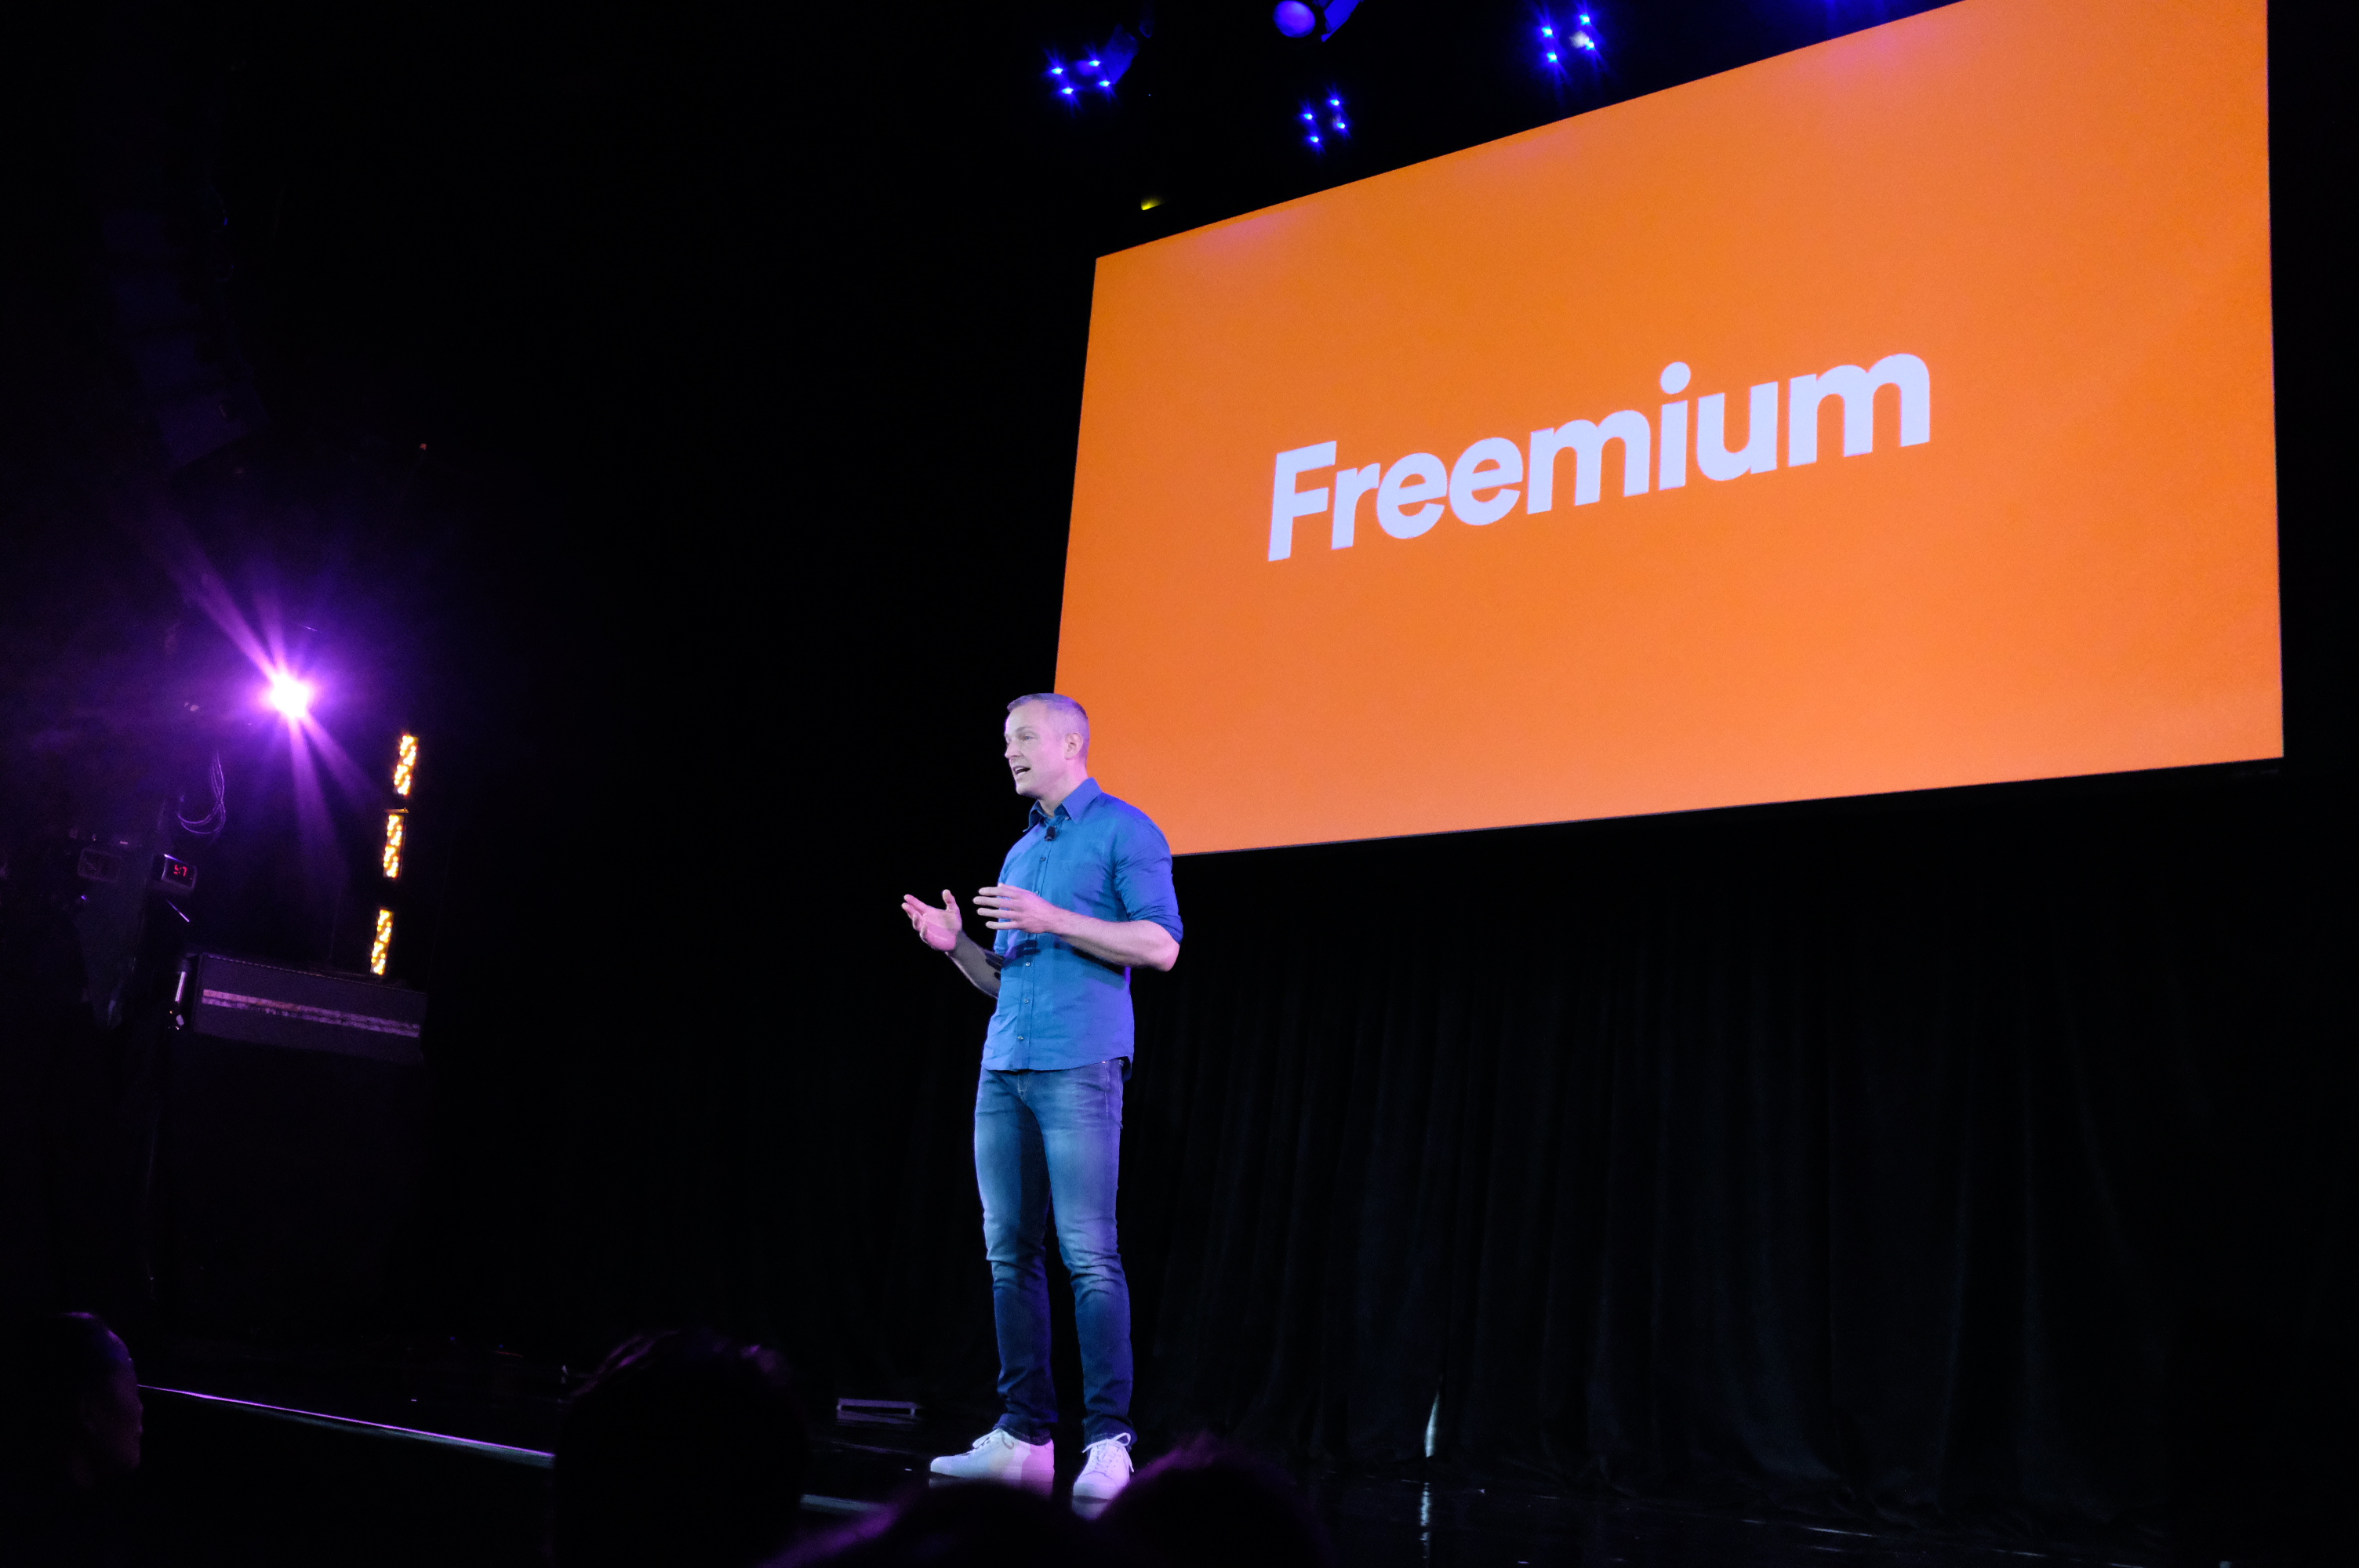 Spotify revamps free offering to prime future conversions